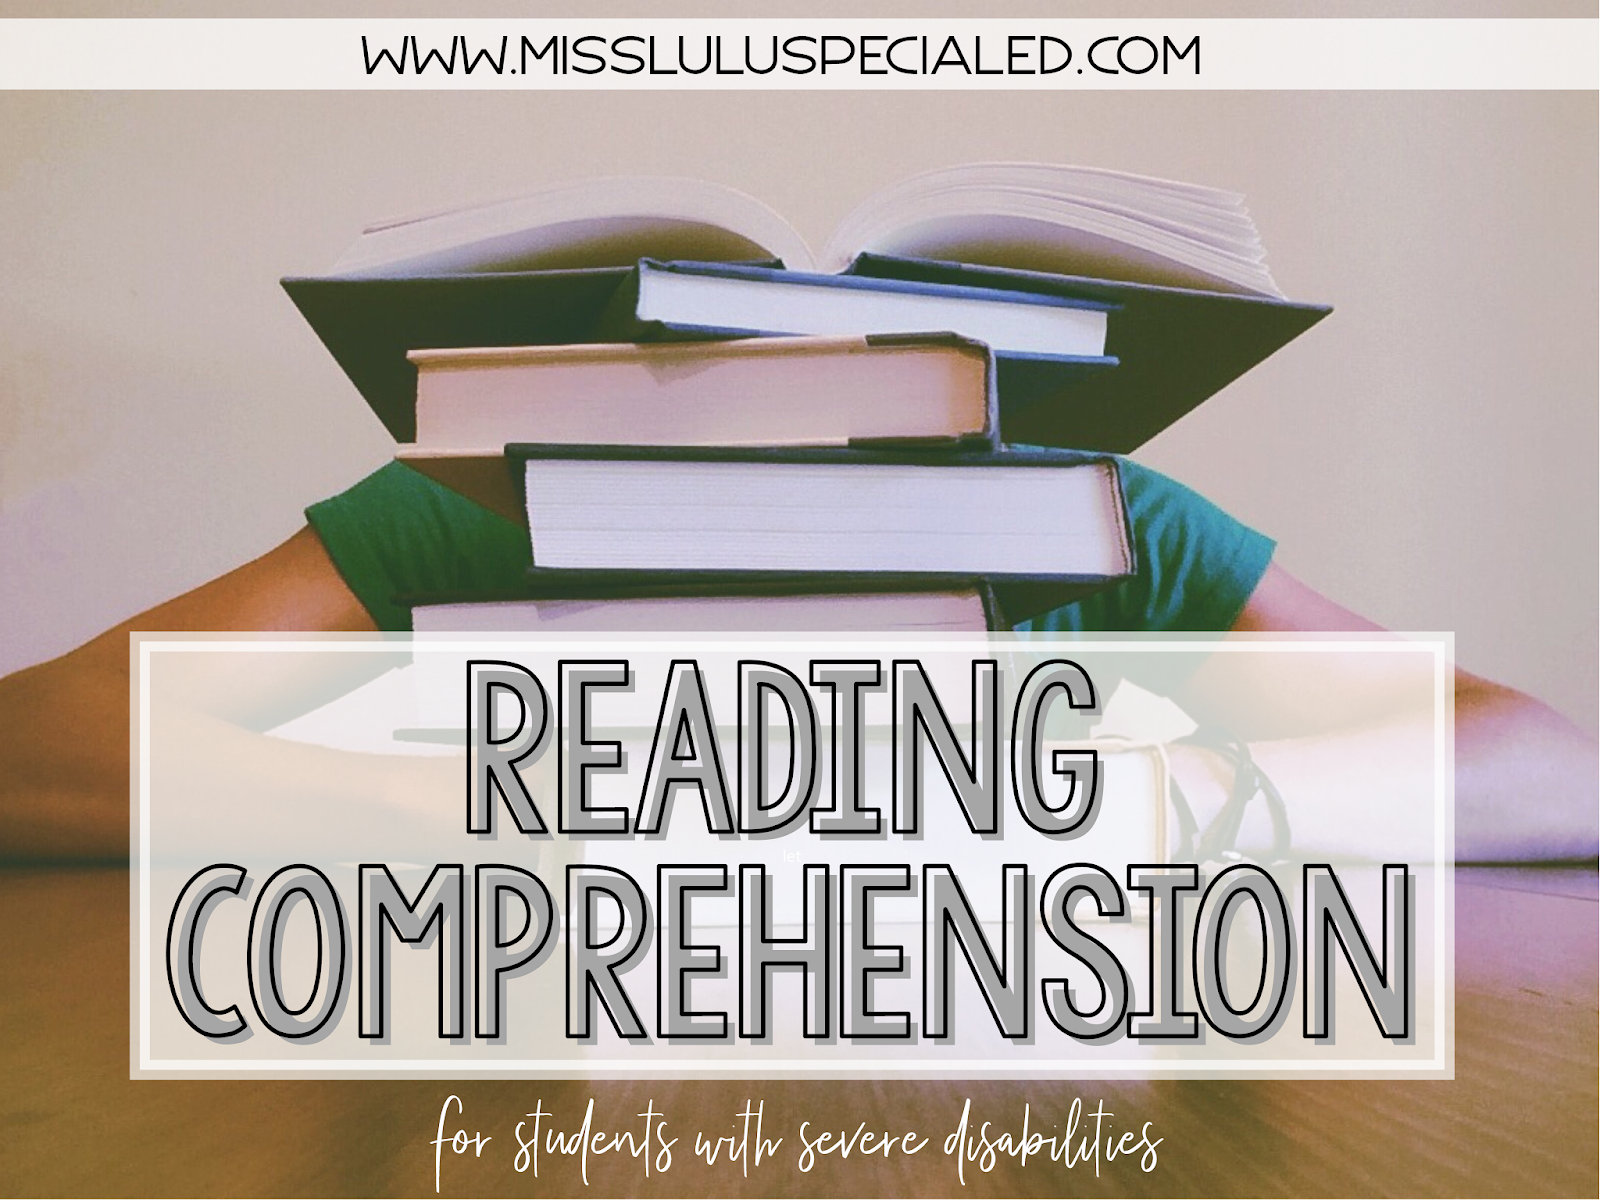 - Reading Comprehension For Students With Severe Disabilities - Miss